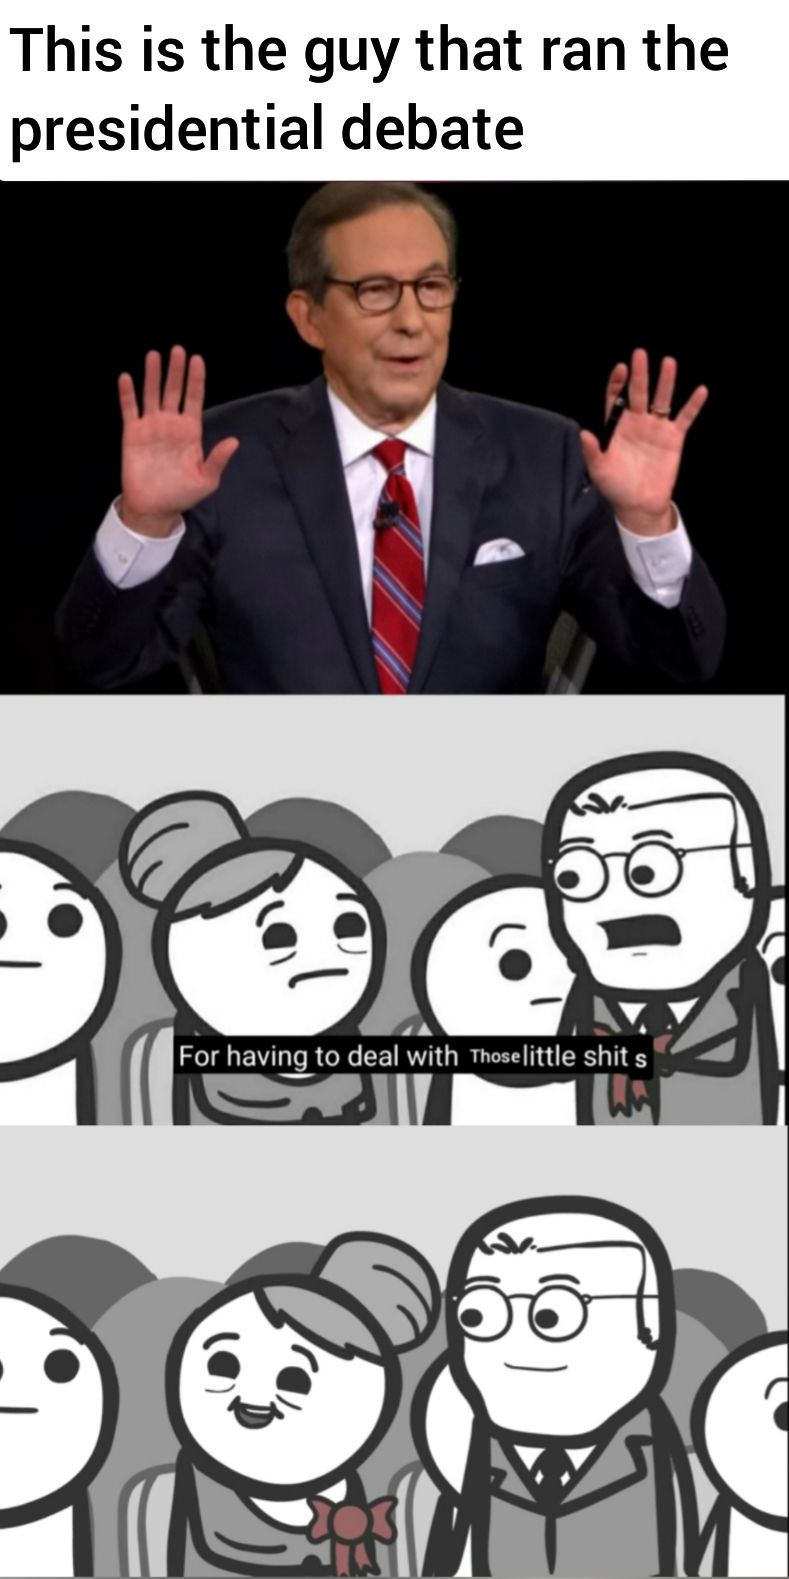 I Present To You Another Presidential Debate Meme Thor Gift Thorgift Com If You Like It Please Buy Some From Th Debate Memes Love Memes Funny Memes